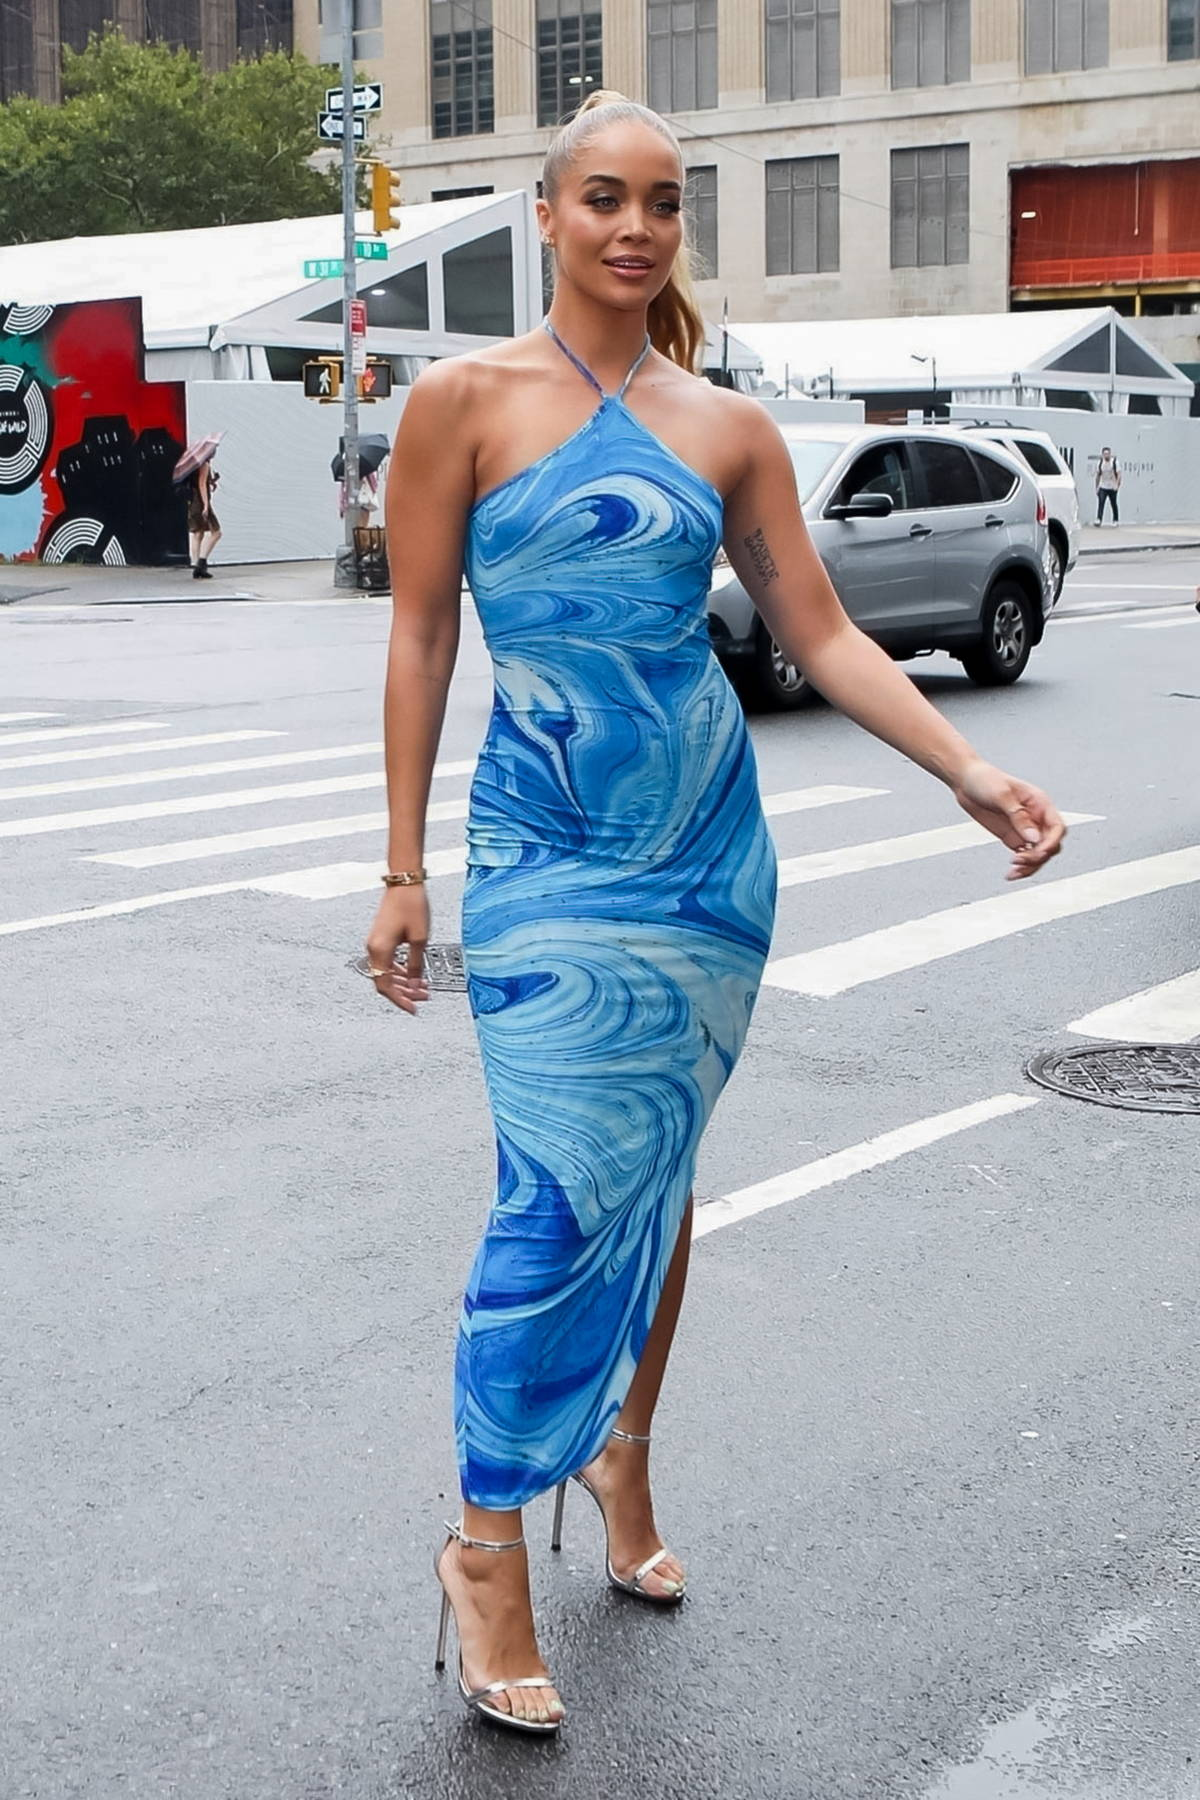 Jasmine Sanders attends the Revolve Gallery inaugural event during New York Fashion Week at Hudson Yards in New York City